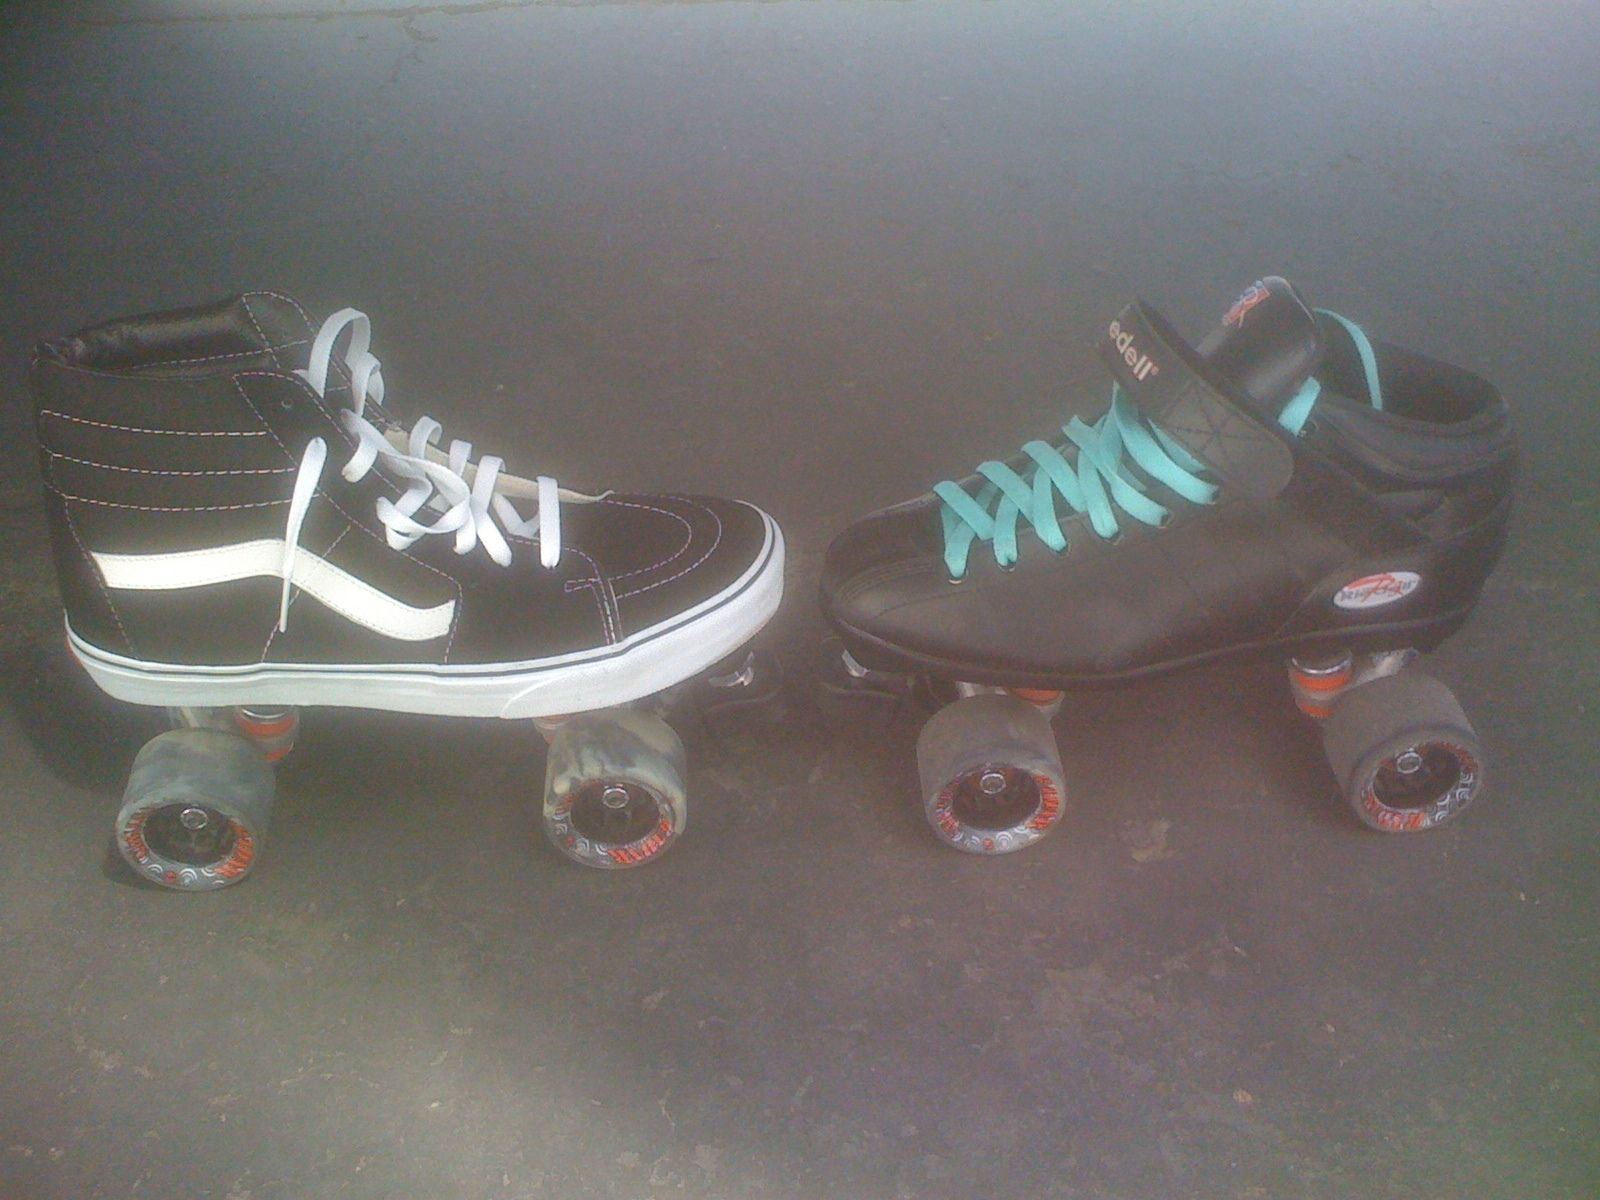 It's easy to make your own Vans tennis shoe skates out of an old pair of roller skates. I chose the old school high tops because they have good ankle support and they're just bitchen.